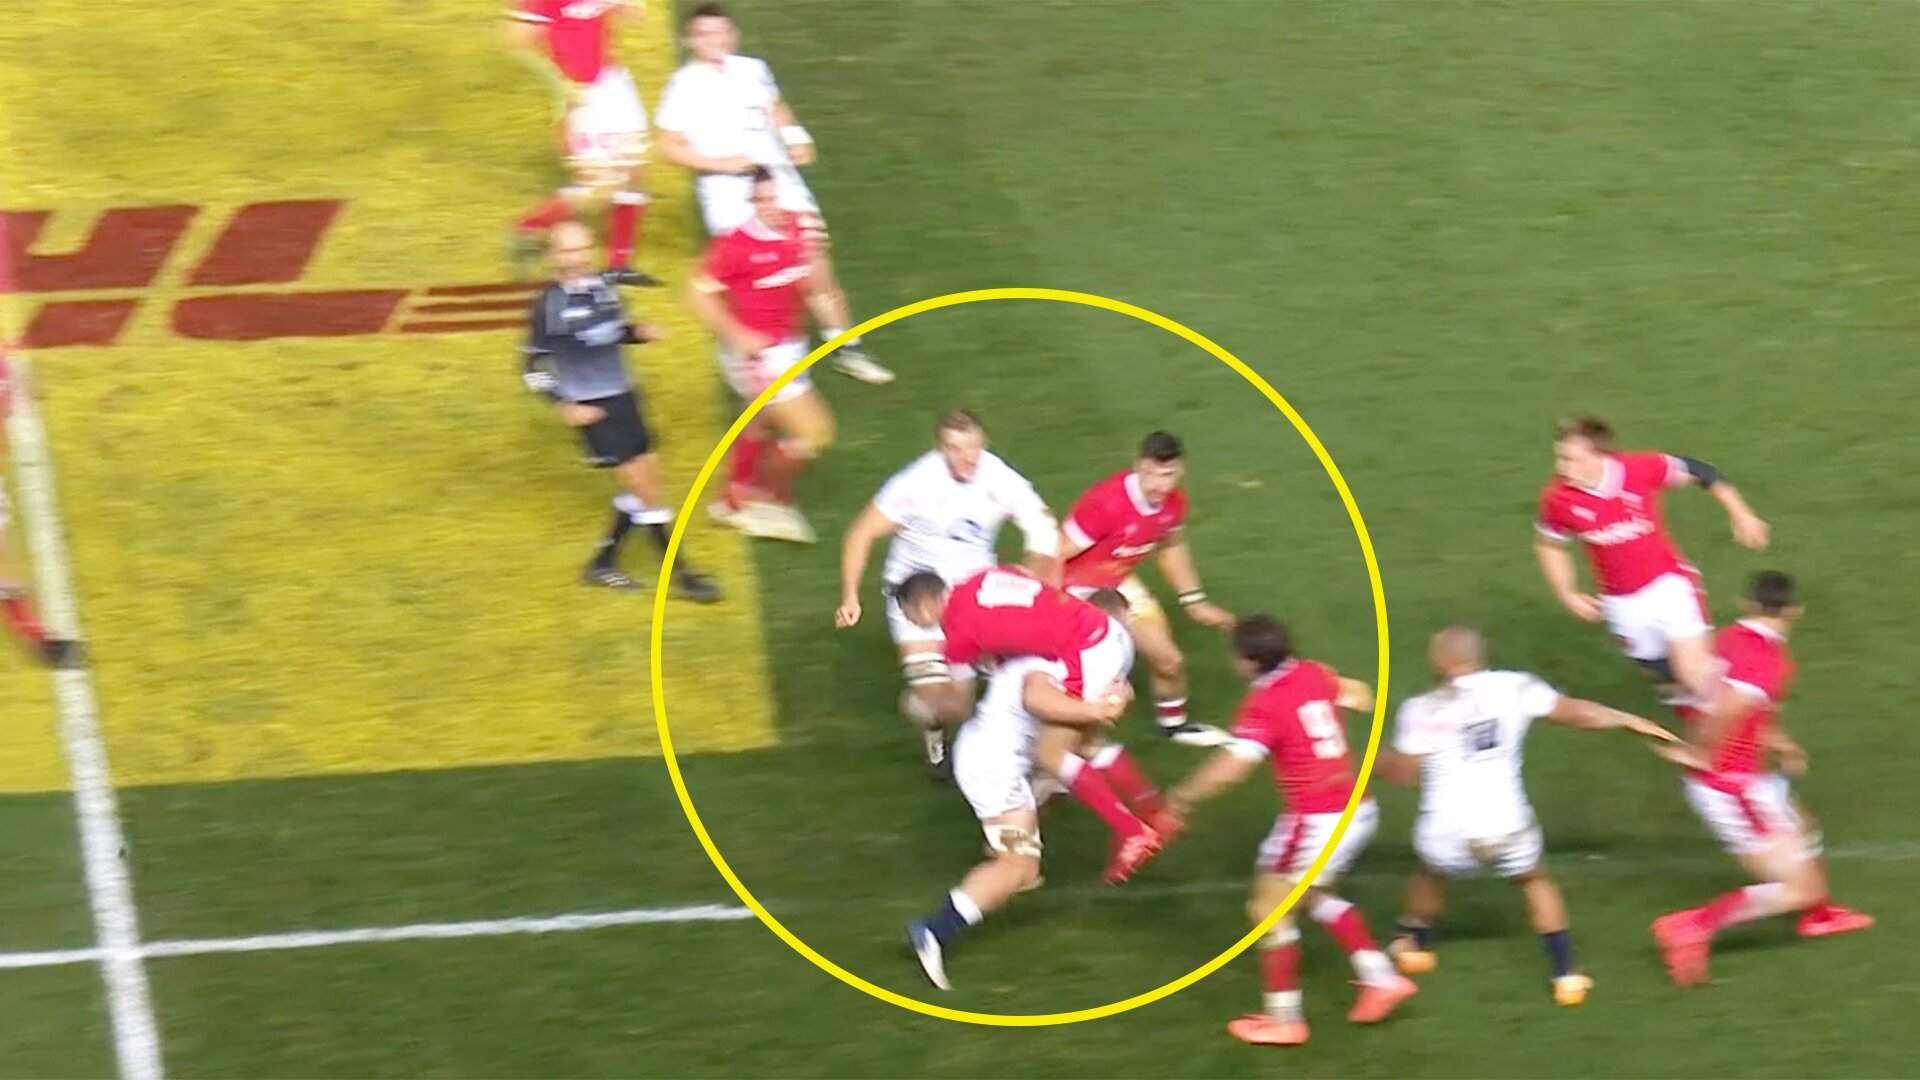 Social media erupts following England try after tackle in the air is ruled legal